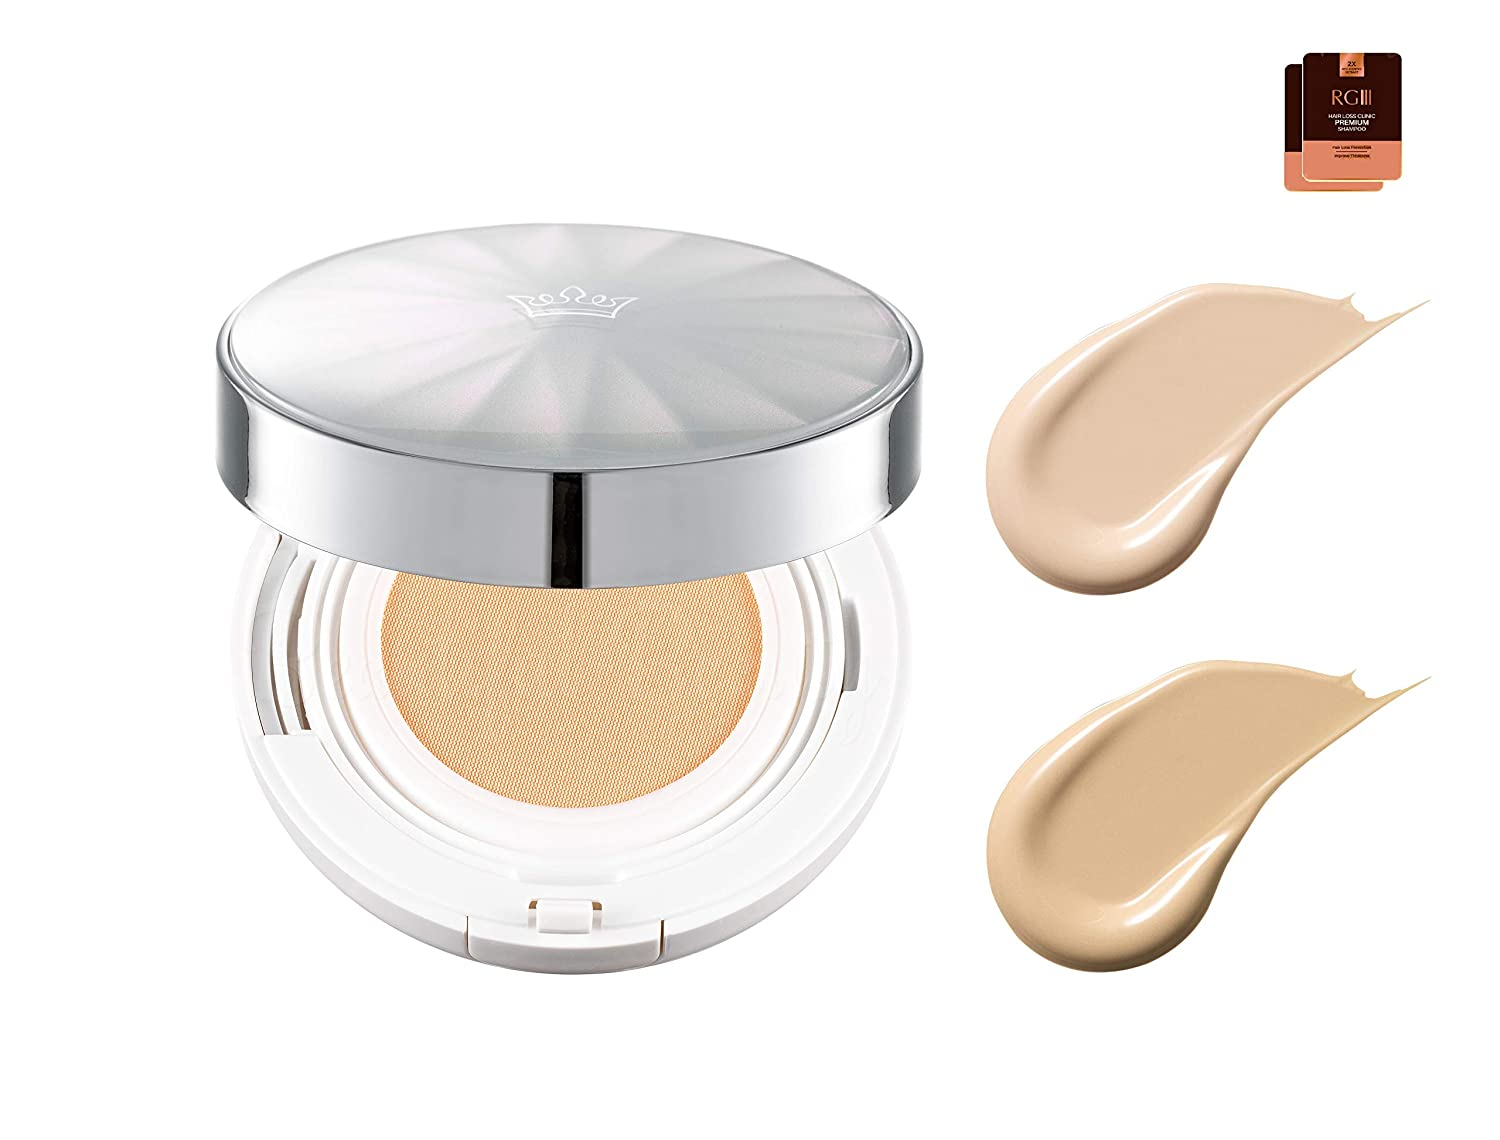 [J.ESTINA] Lucent Light Cushion foundation SPF 50+/PA+++ Long-lasting, high coverage/hydrating Healing Skincare Makeup for Oily Acne Sensitive Skin radiant and glowing - 0.42 oz (#21 Light Beige)